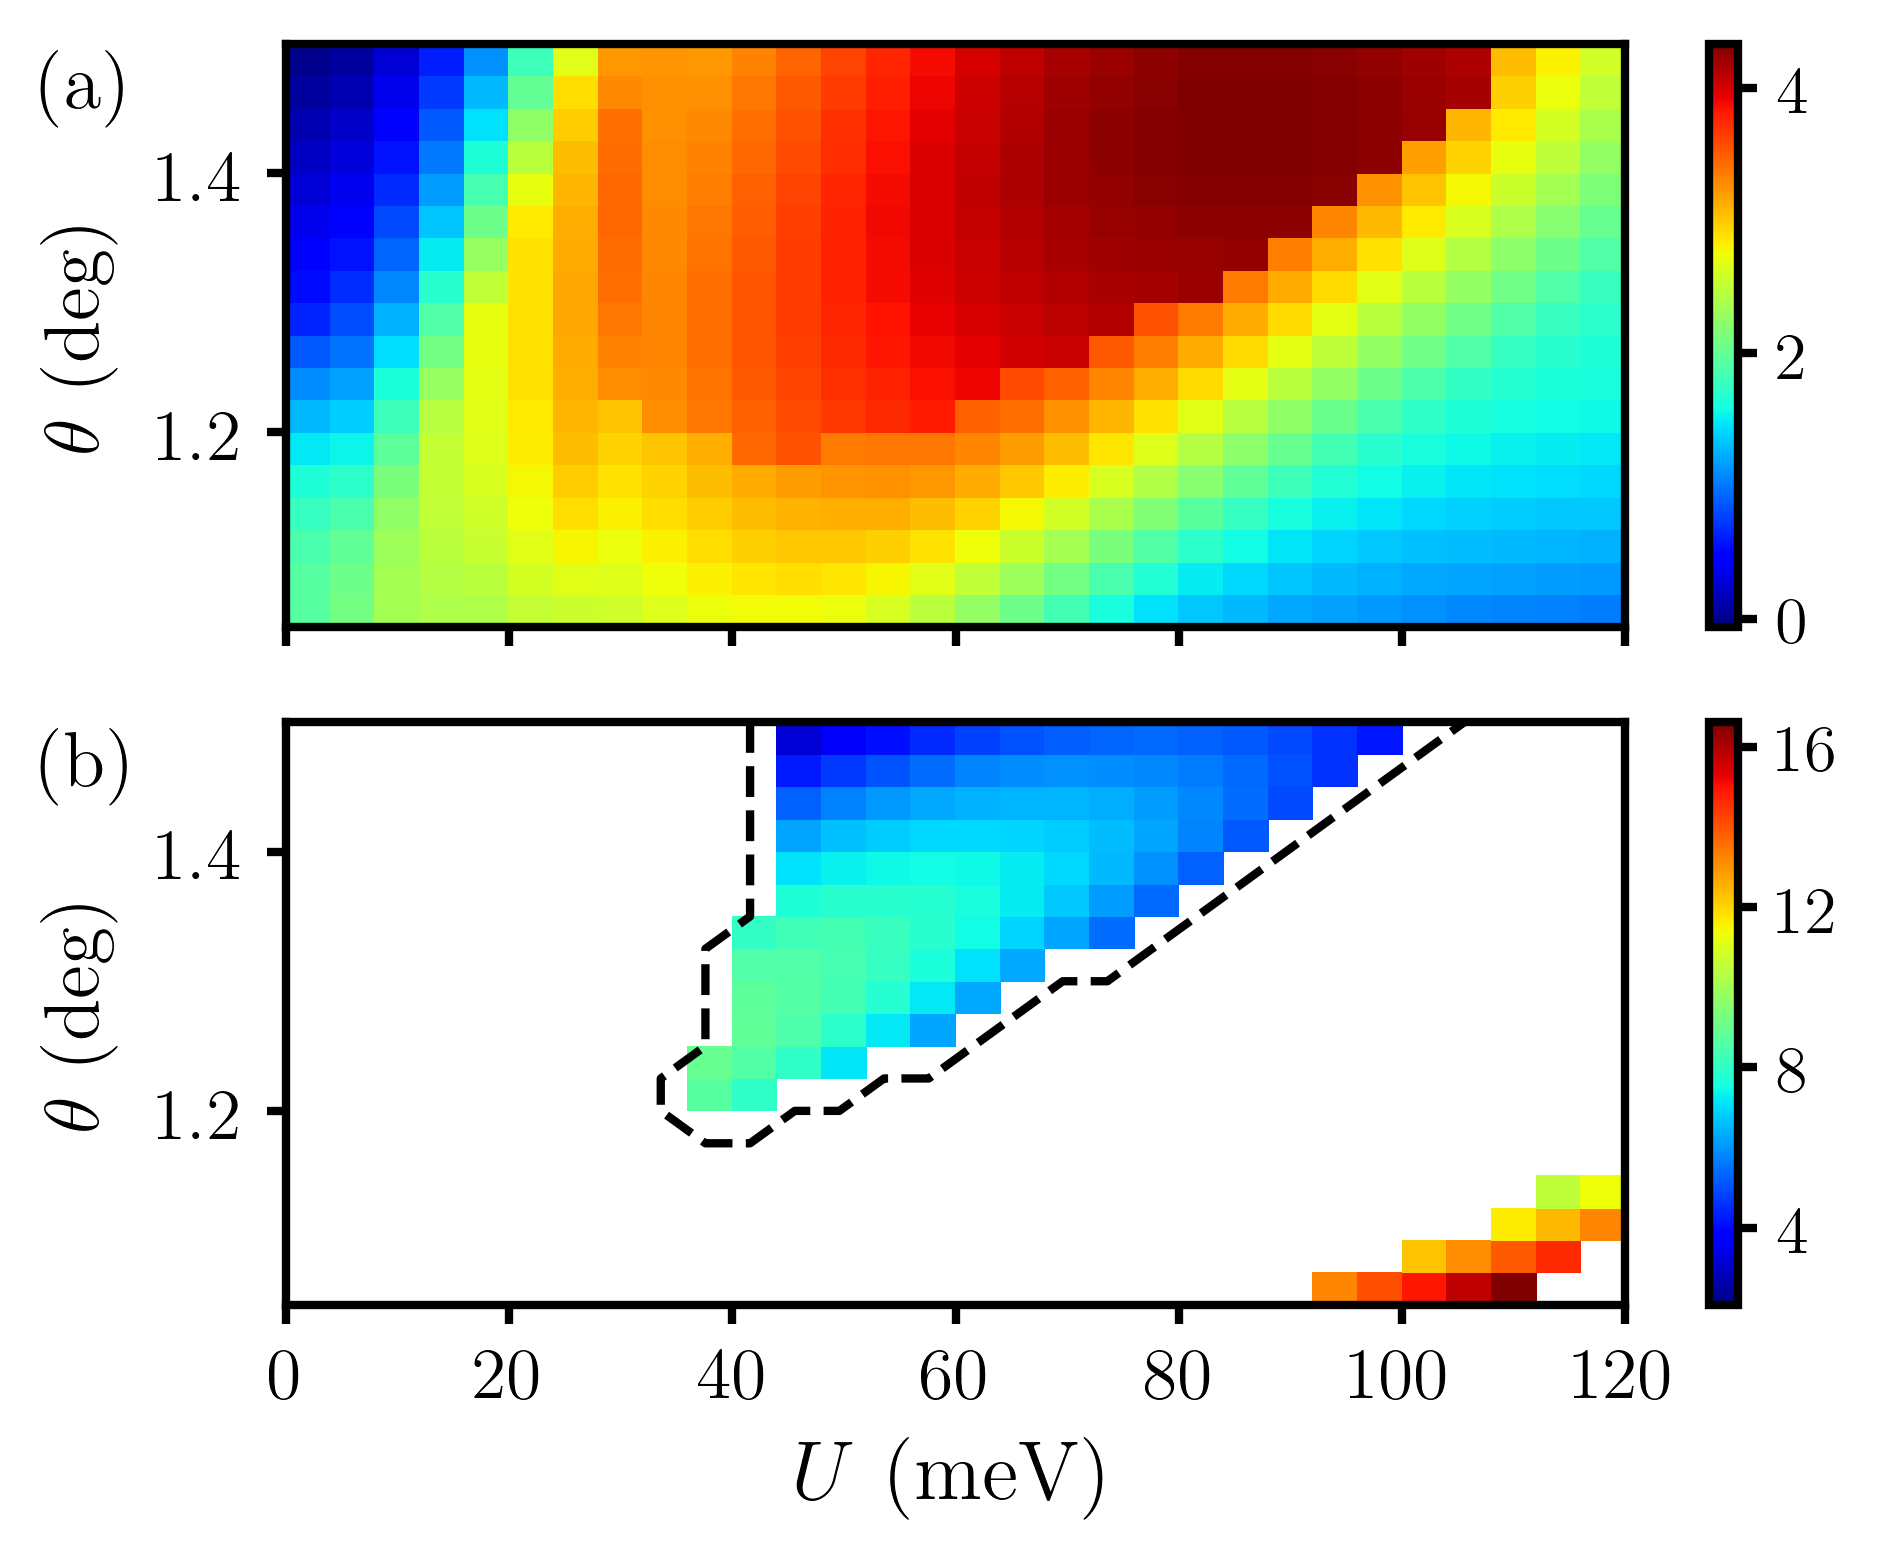 The result of the self-consistent HF approximation without intervalley Hund's coupling. All energy scales are in the unit of meV. (a) Color plot of